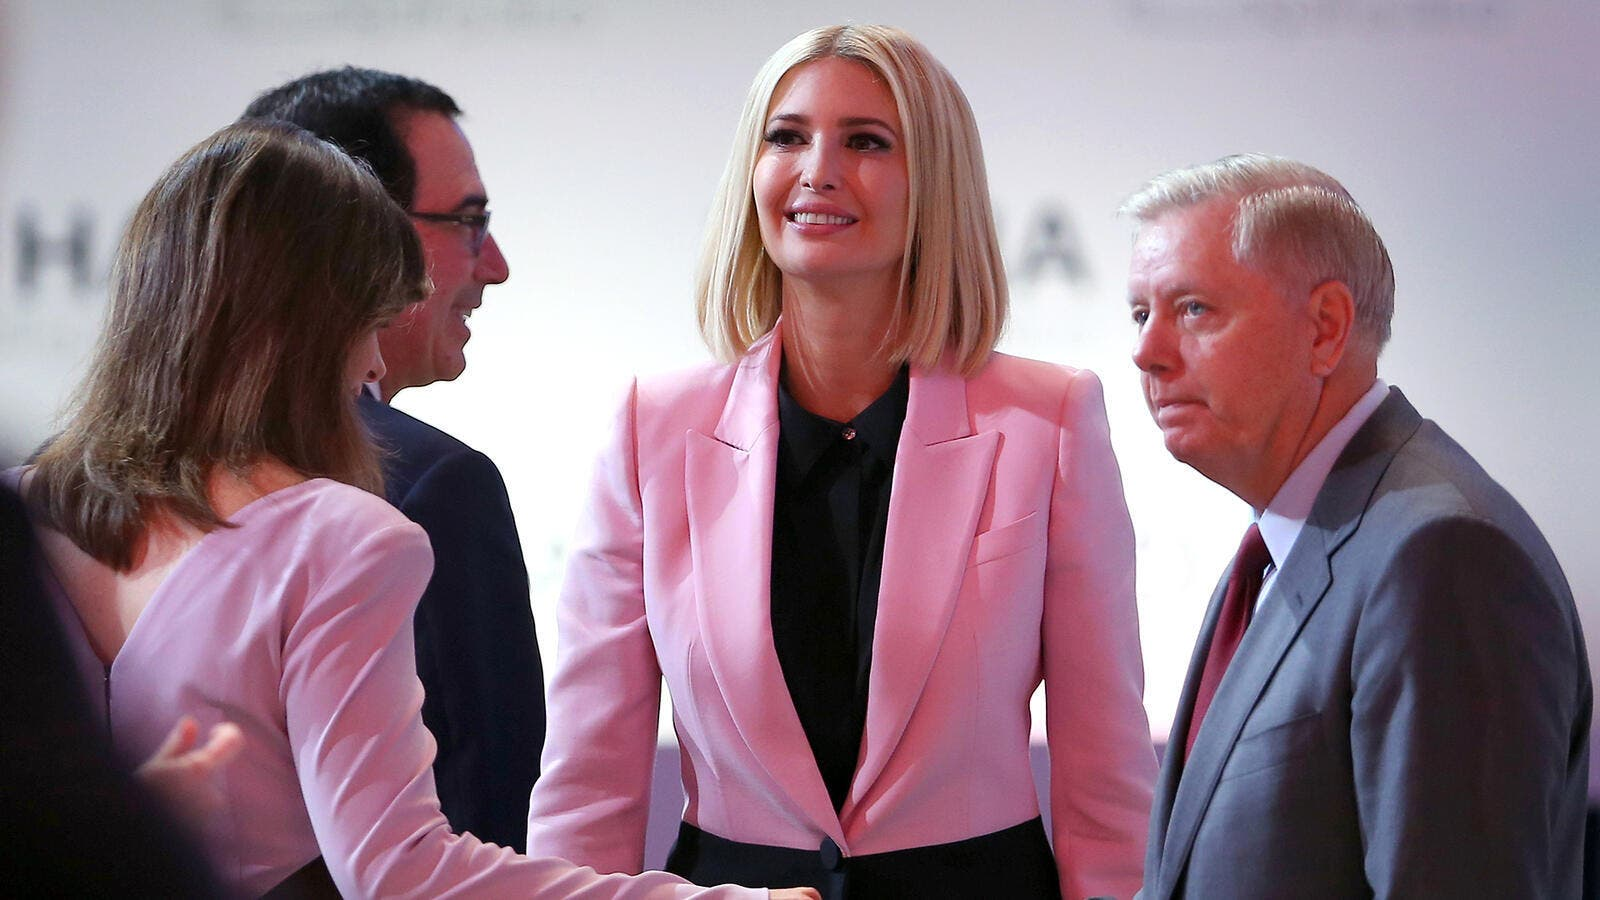 Ivanka Trump takes questions from her spokeswoman at Doha Forum (AFP)